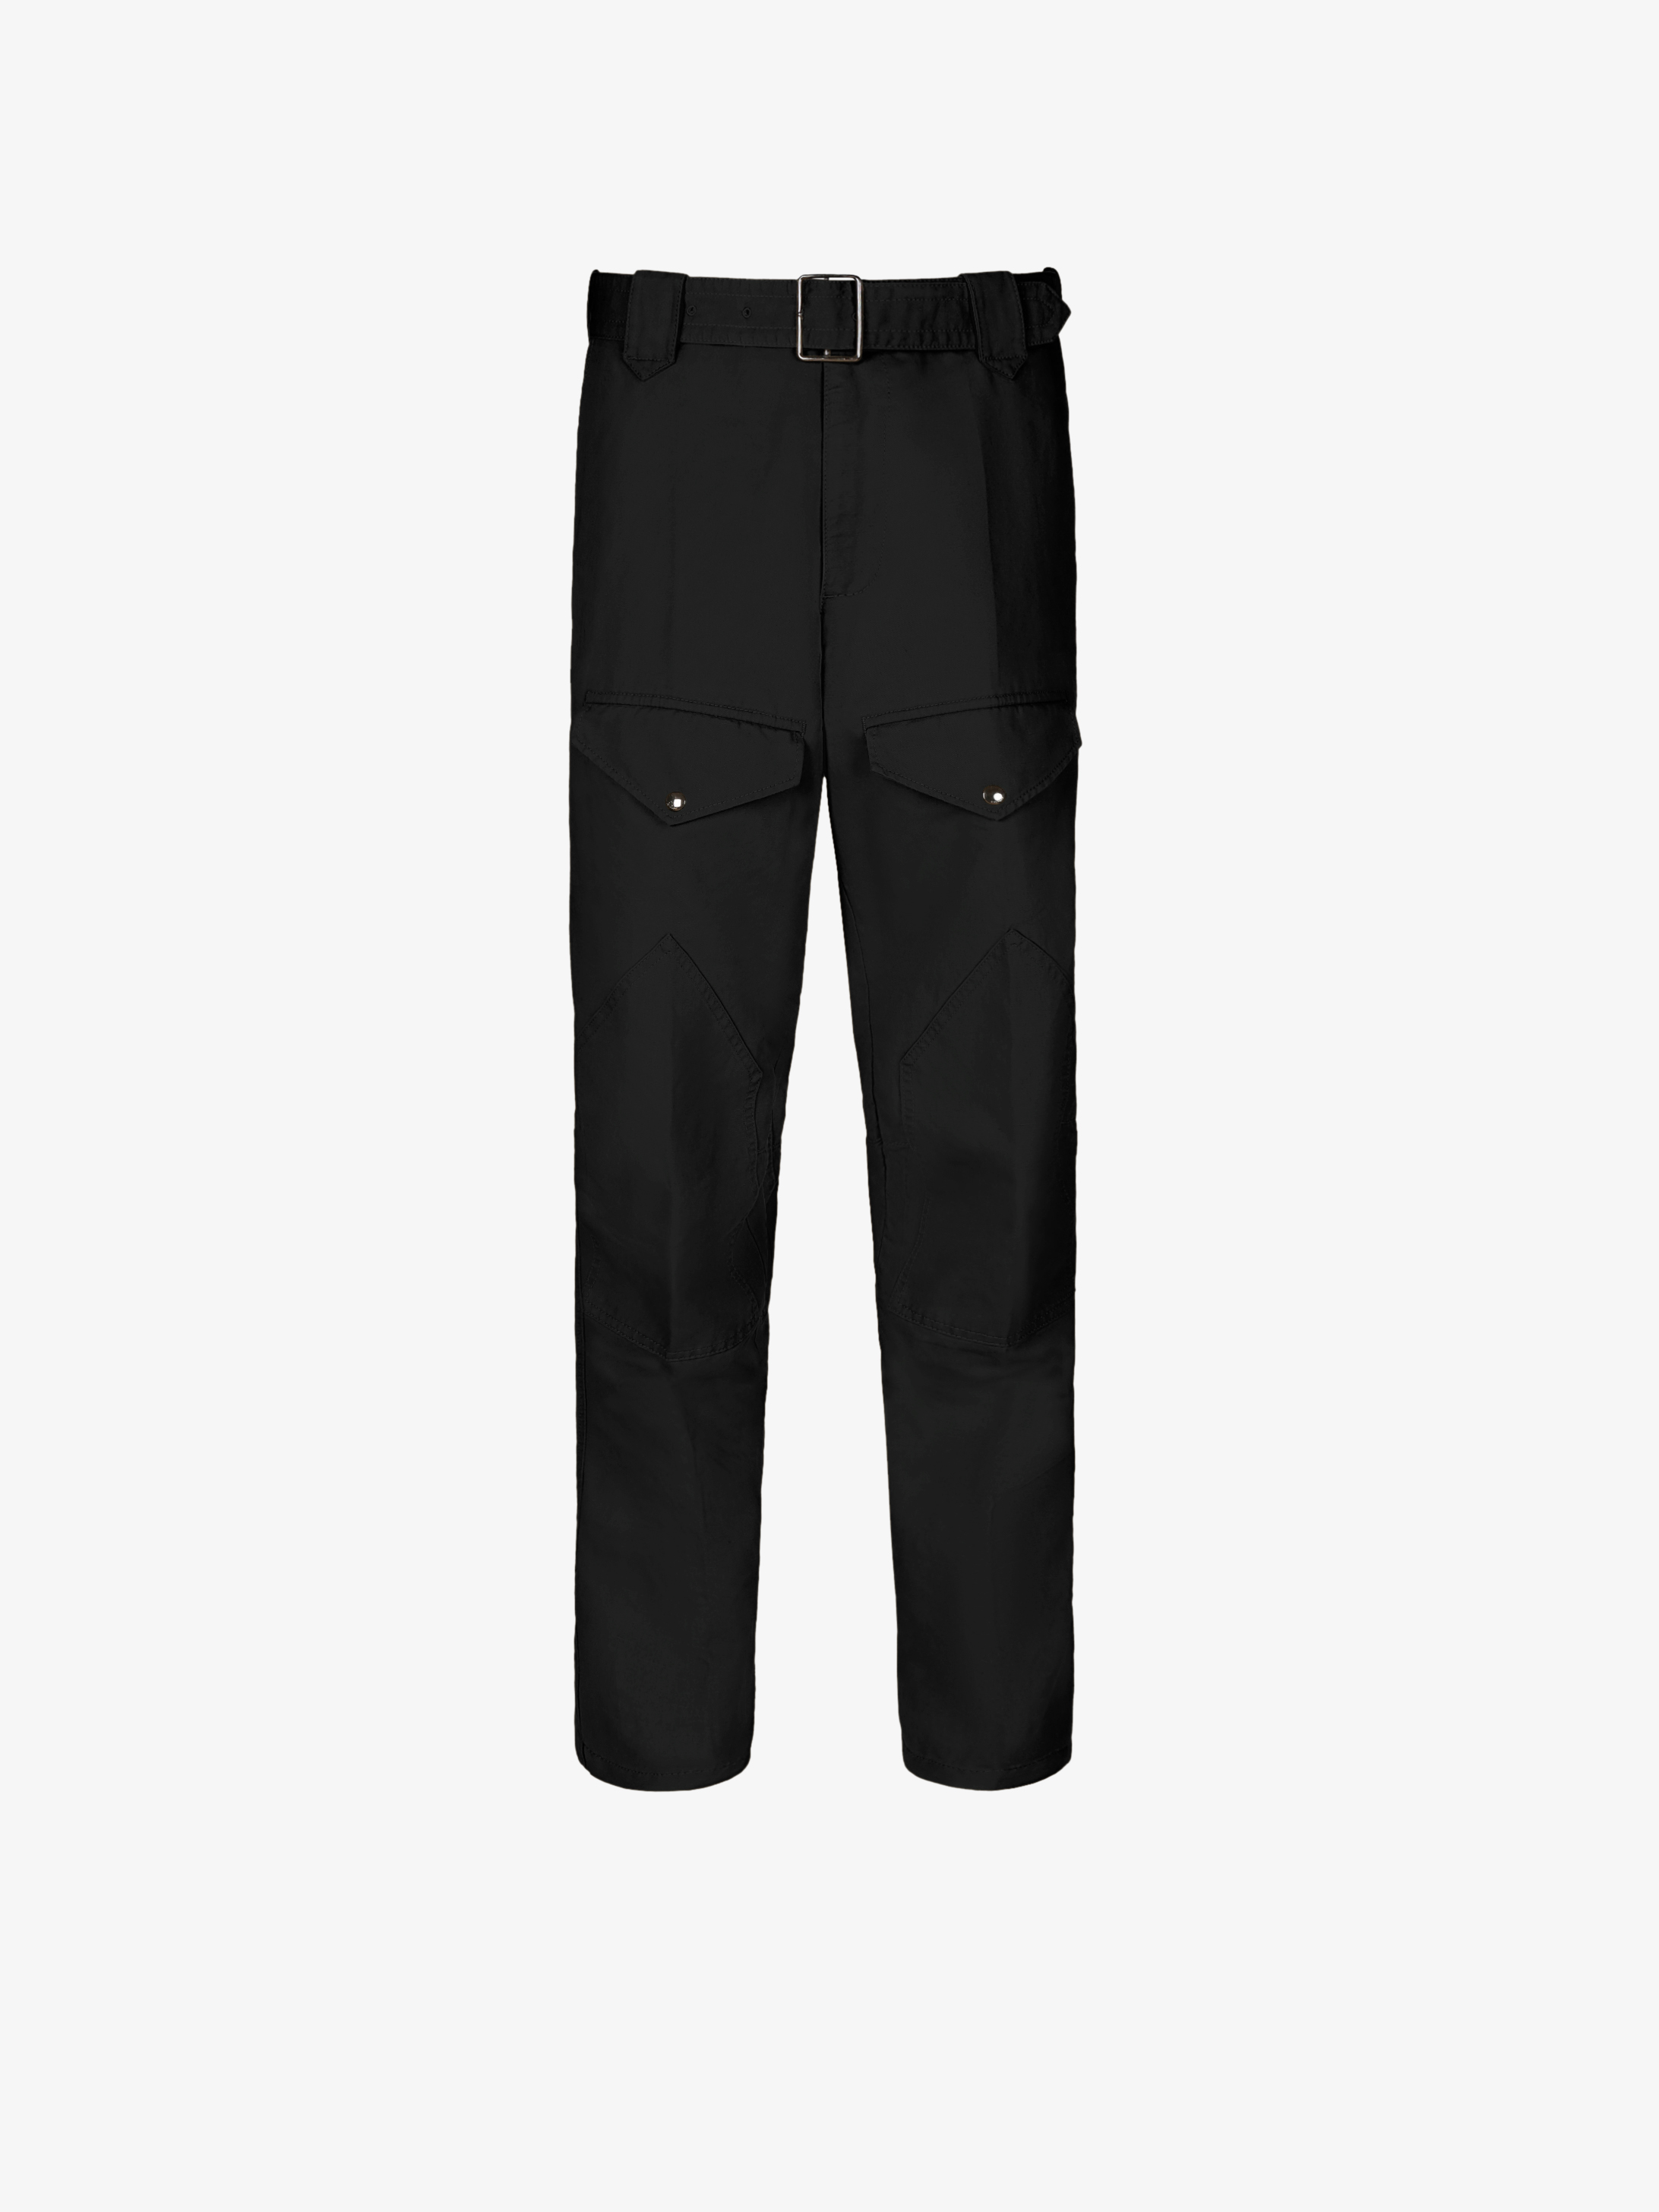 Military pants with belt and graphic inserts